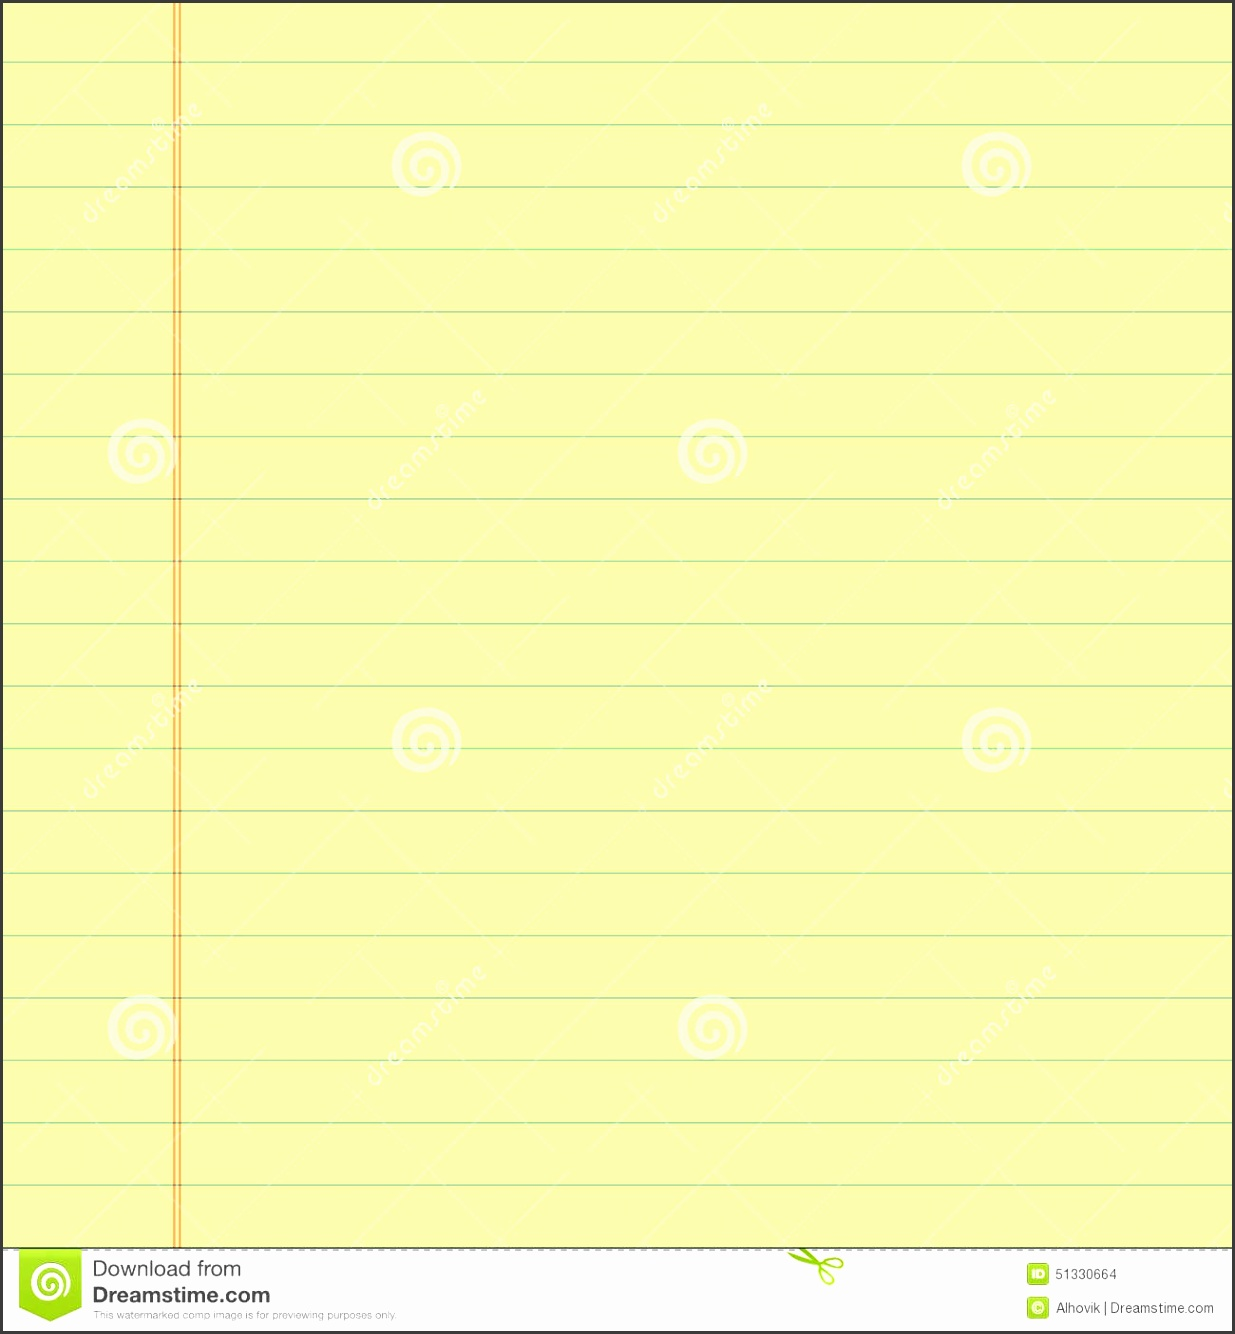 Yellow Lined Paper Clipart Cliparts Suggest Cliparts Vectors Lined Paper Template Cliparts 19 Yellow Lined Paper Clipart Word Template Lined Paper Toll